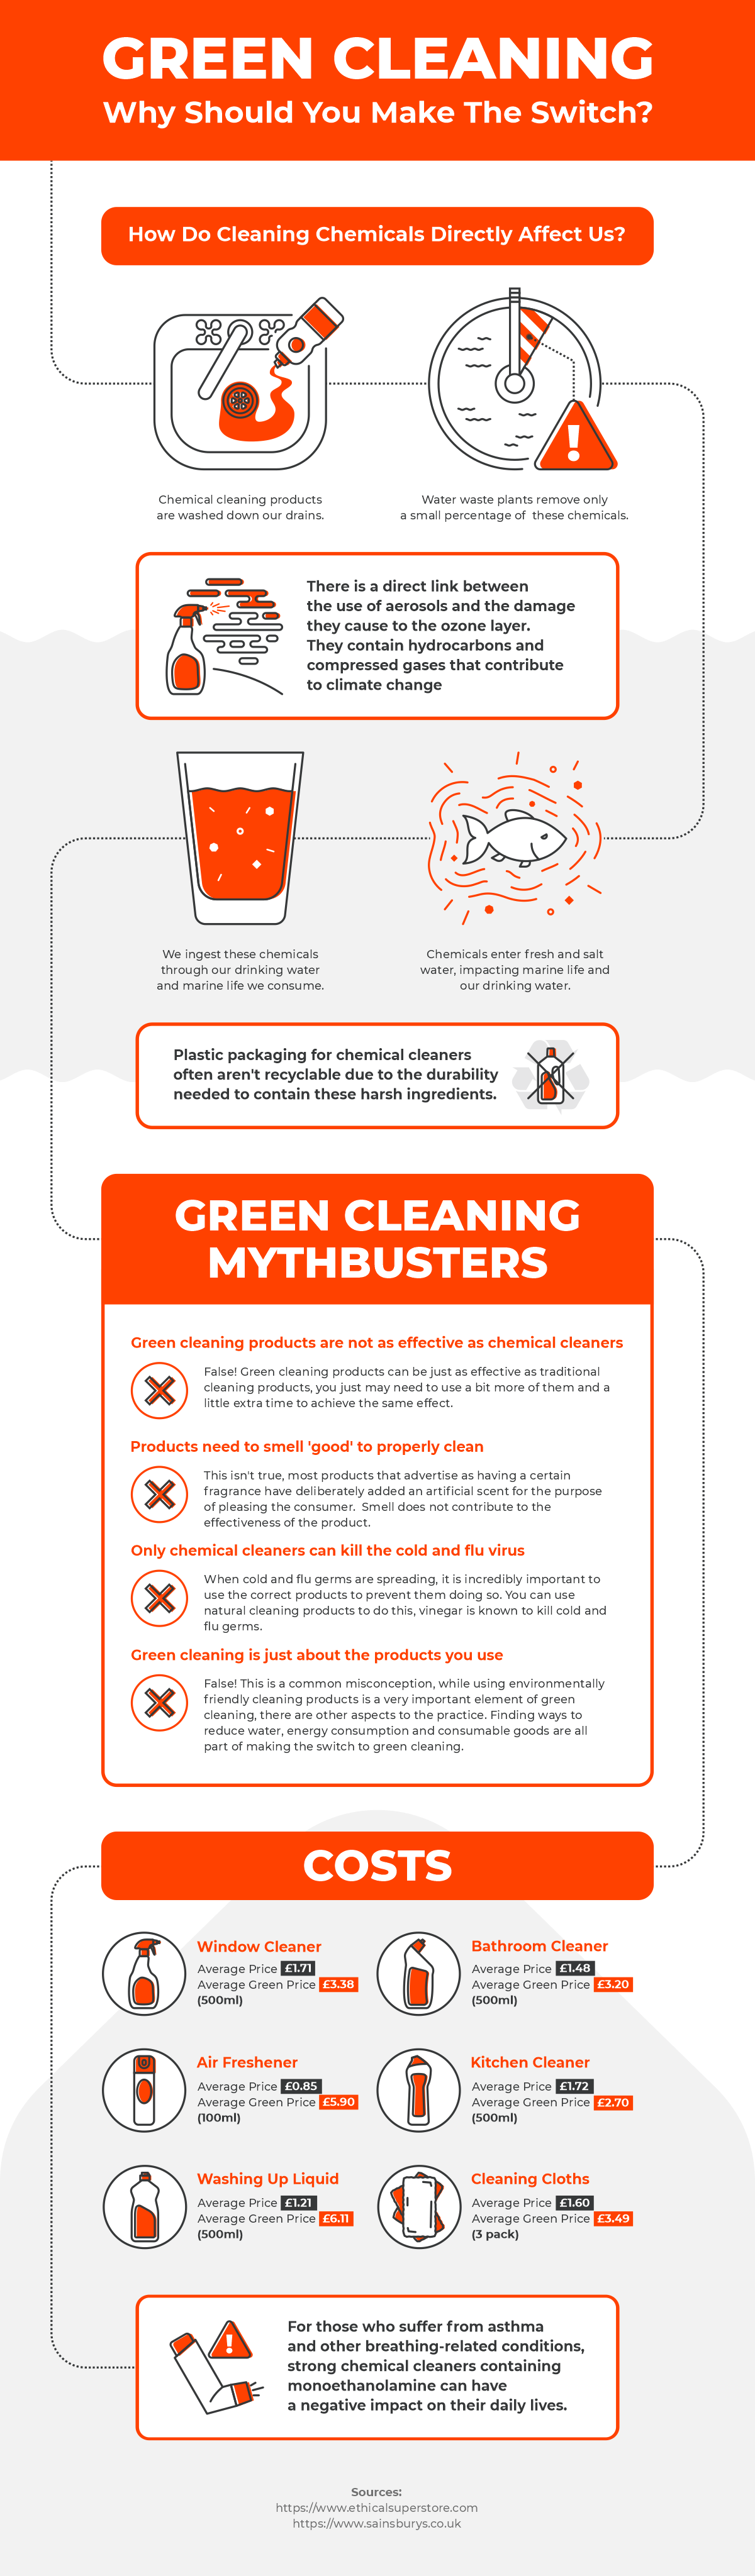 green cleaning information